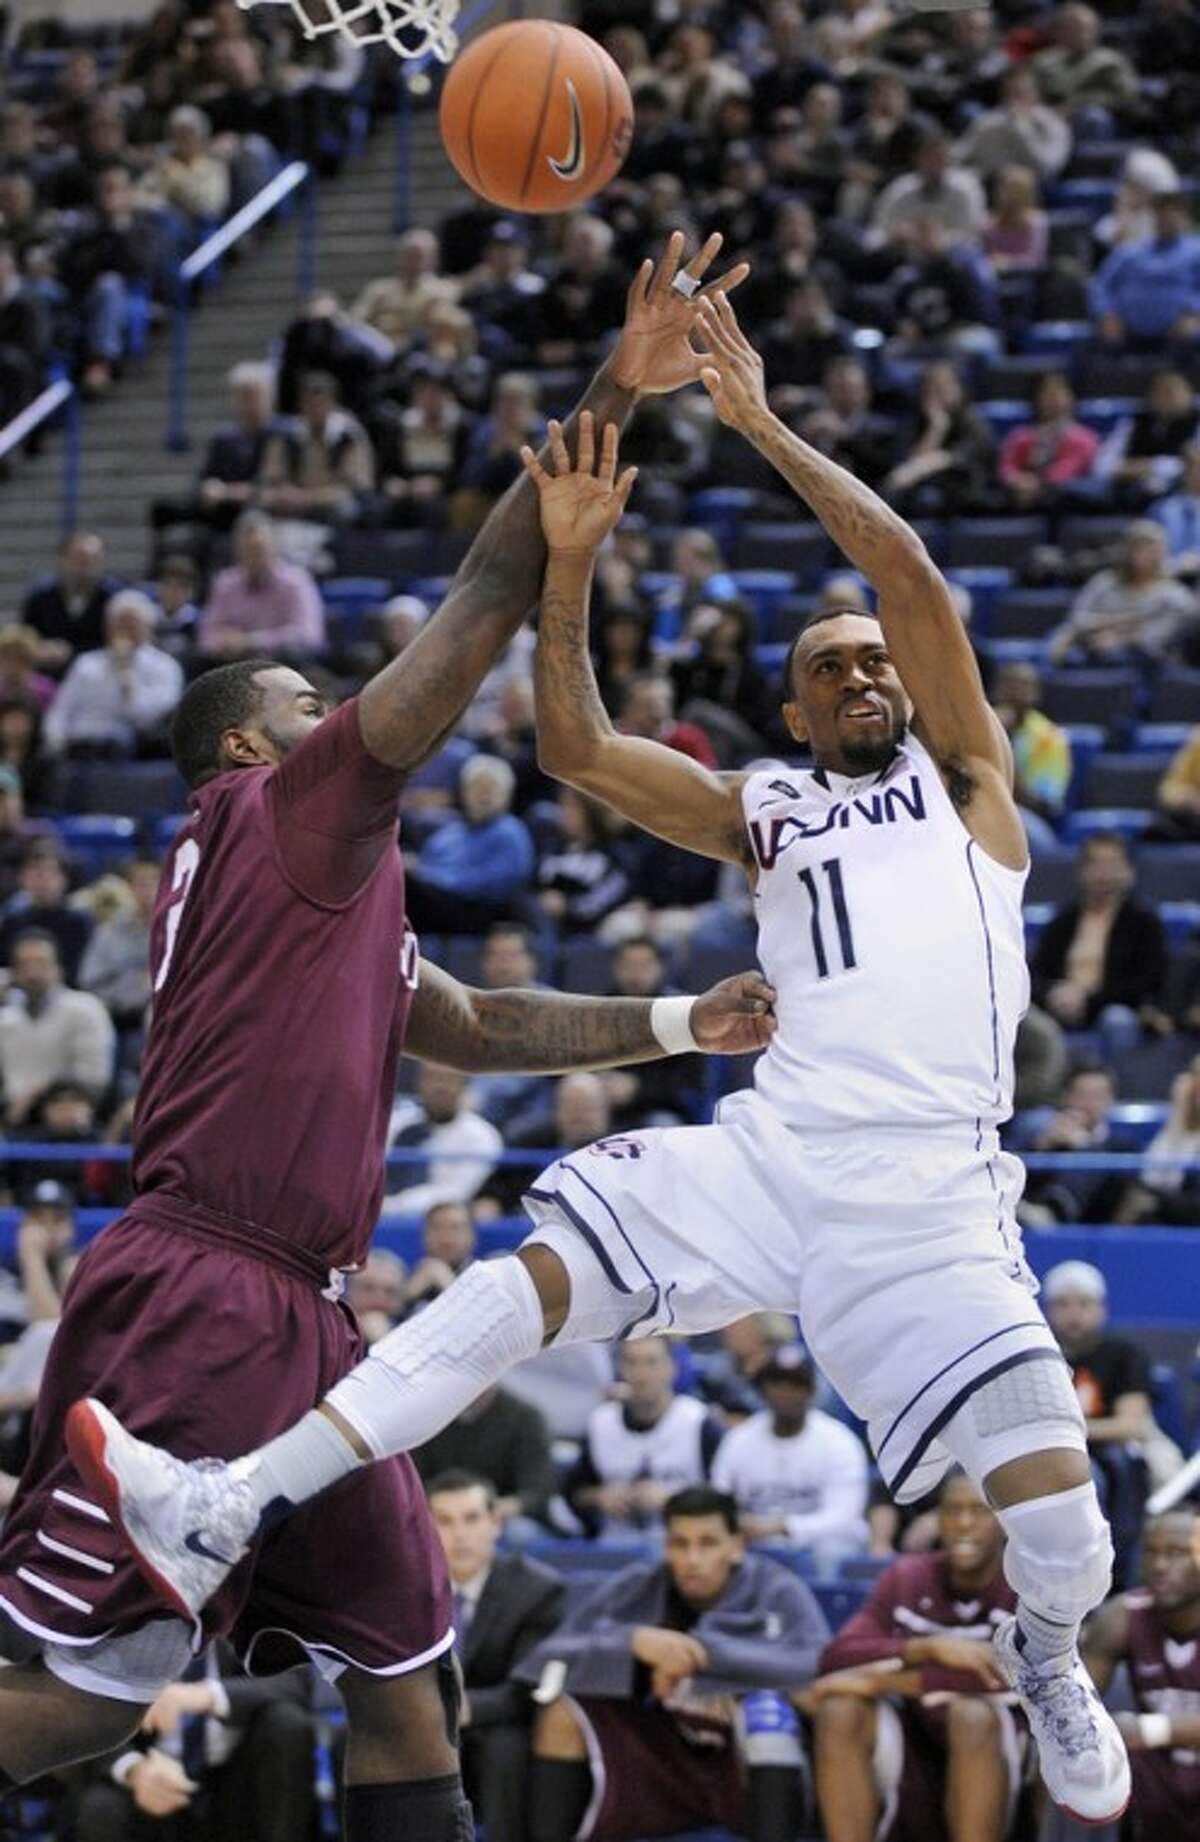 Connecticut's Ryan Boatright, right, is fouled by Fordham's Travion Leonard during the first half of an NCAA college basketball game in Hartford, Conn., Friday, Dec. 21, 2012. (AP Photo/Fred Beckham)